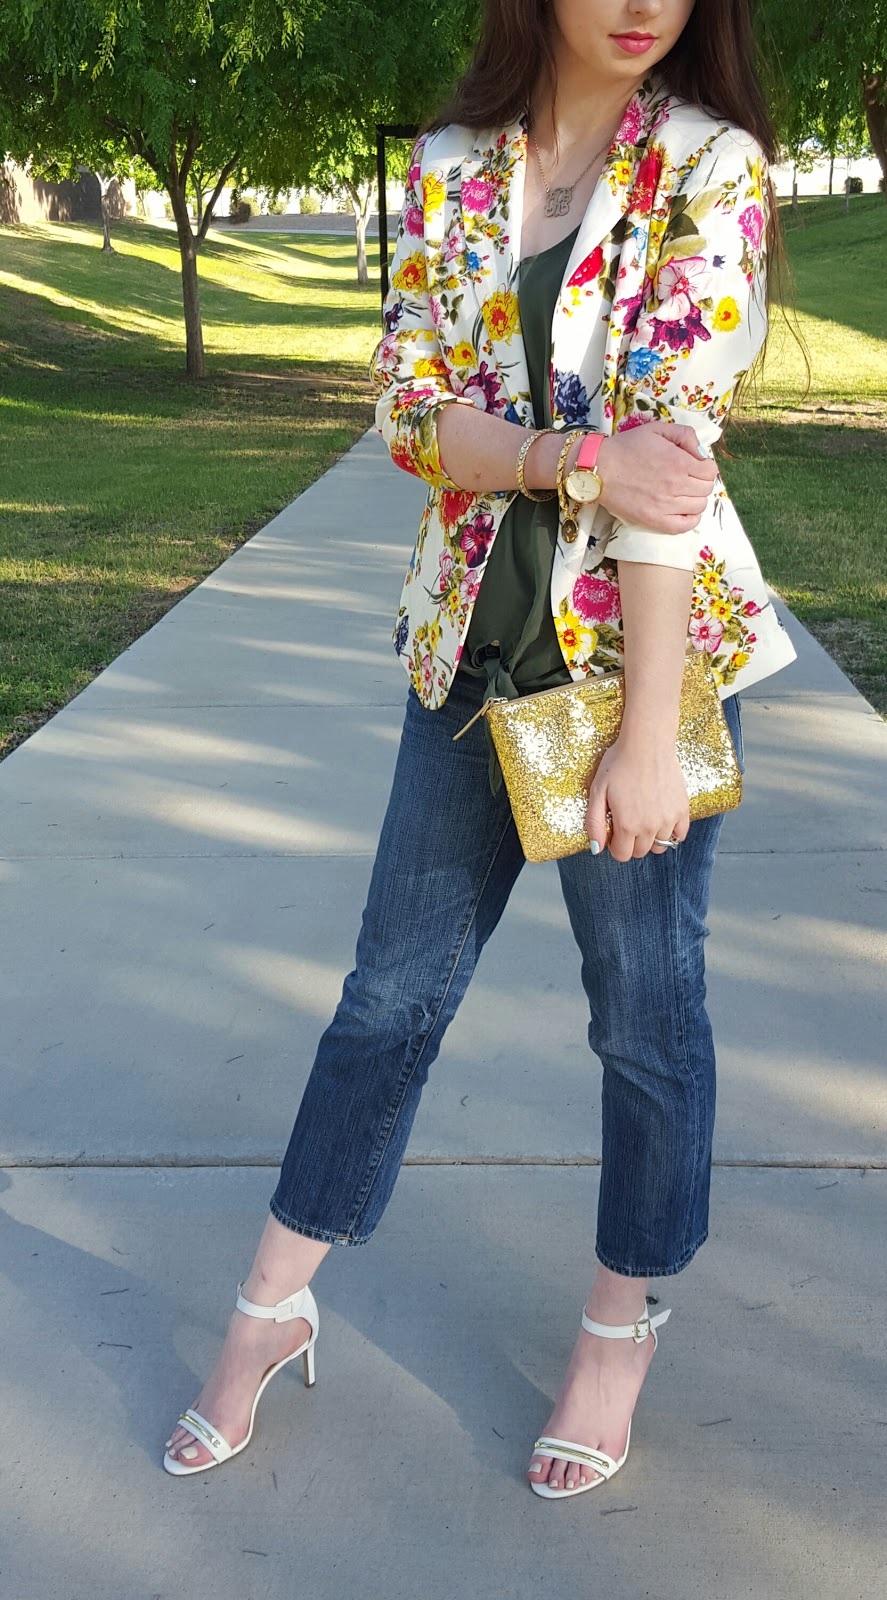 floral blazer with cropped jeans and heeled sandals for a Spring outfit